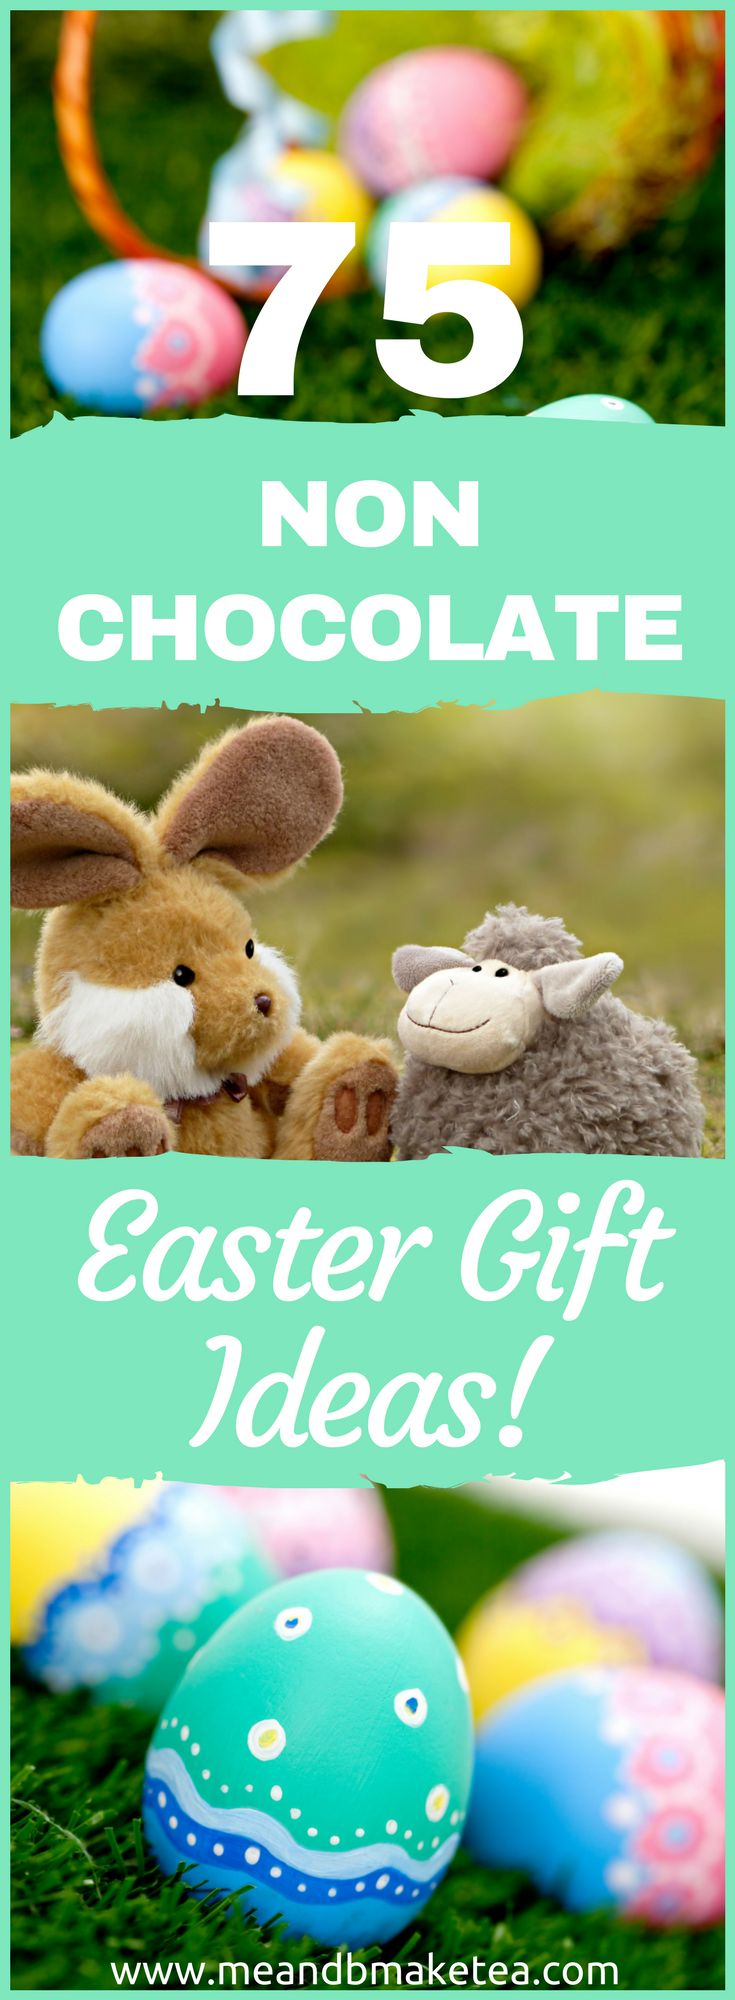 75 Best Non Chocolate Gift Ideas for Kids this Easter! Yep, no sweets, no candy, no chocolate - but super fun gift ideas for Easter!    Today on the blog I'm sharing a fun post featuring some of my favourite non-chocolate Easter gift ideas. Yep, you can have fun without chocolate. Who knew?!